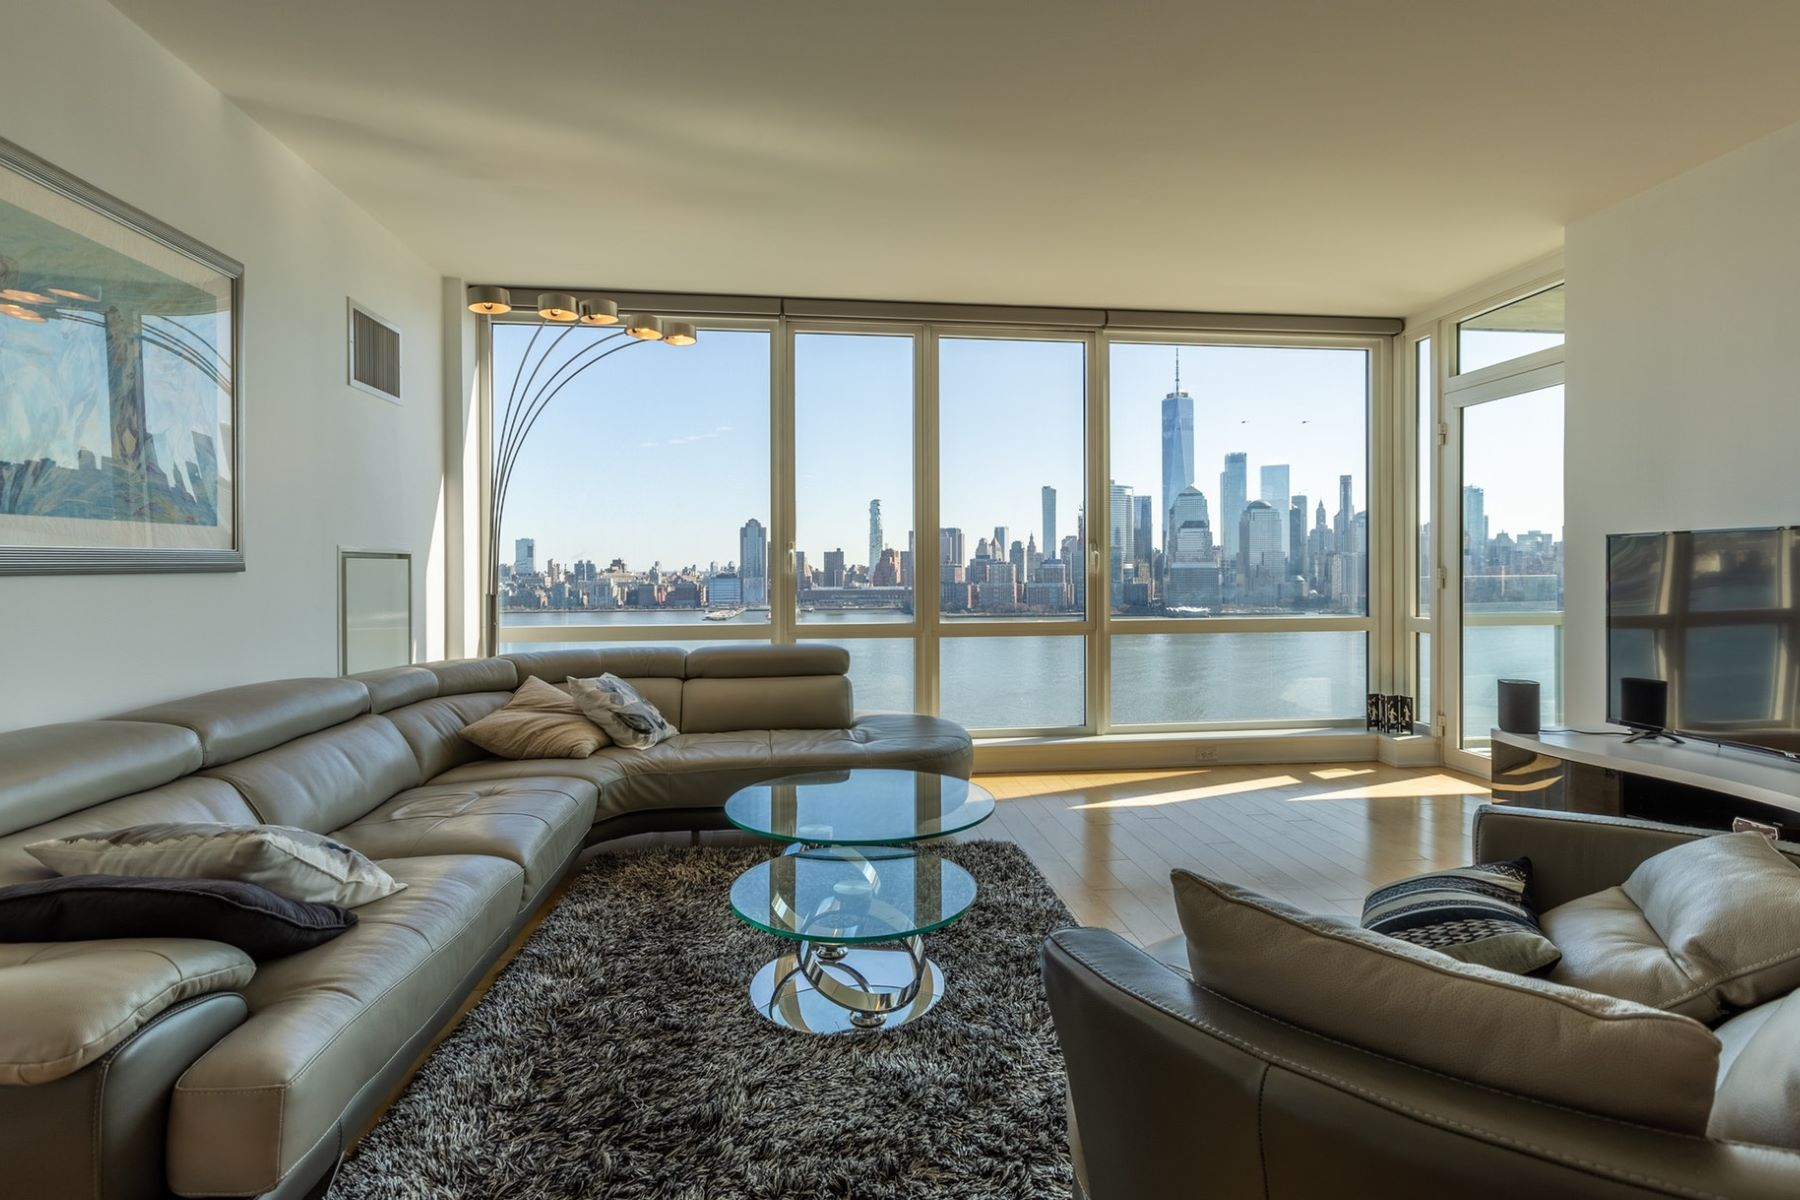 Condominiums للـ Sale في Jaw-dropping views! Welcome yourself to this amazing home. 2 2nd Street, Unit 2603, Jersey City, New Jersey 07302 United States